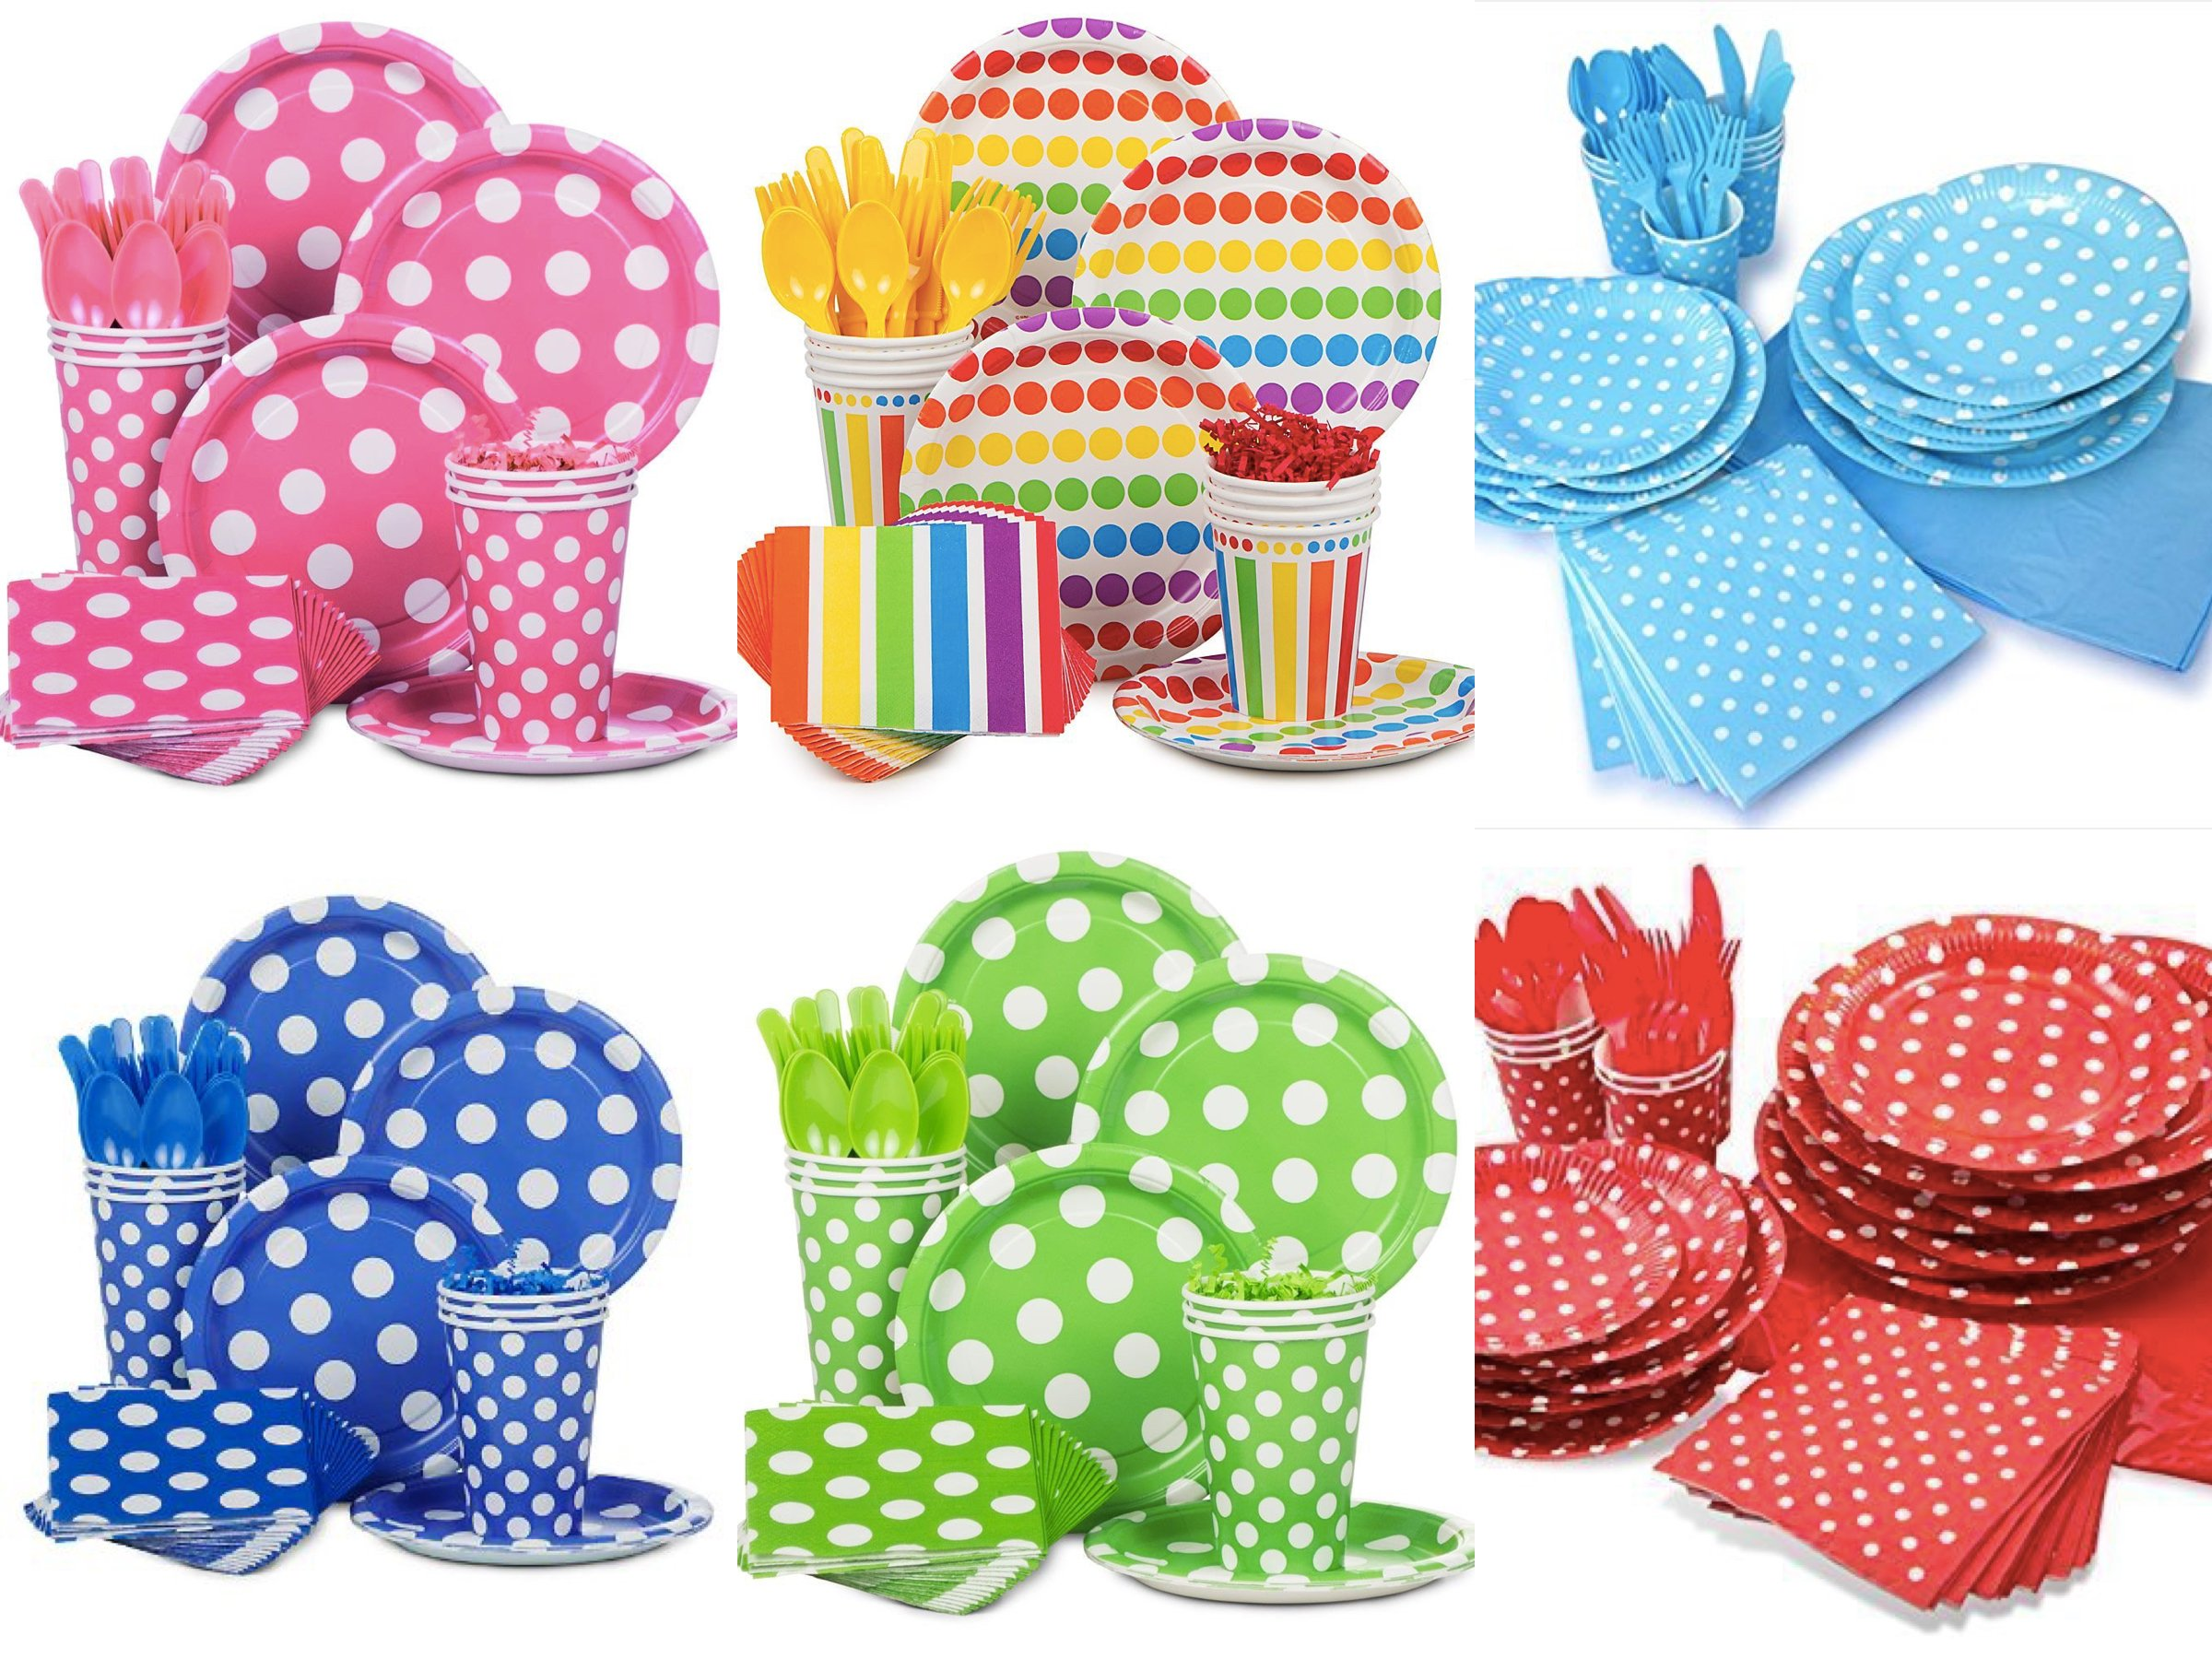 Polka Dot Party Planning Ideas Amp Supplies Baby Showers